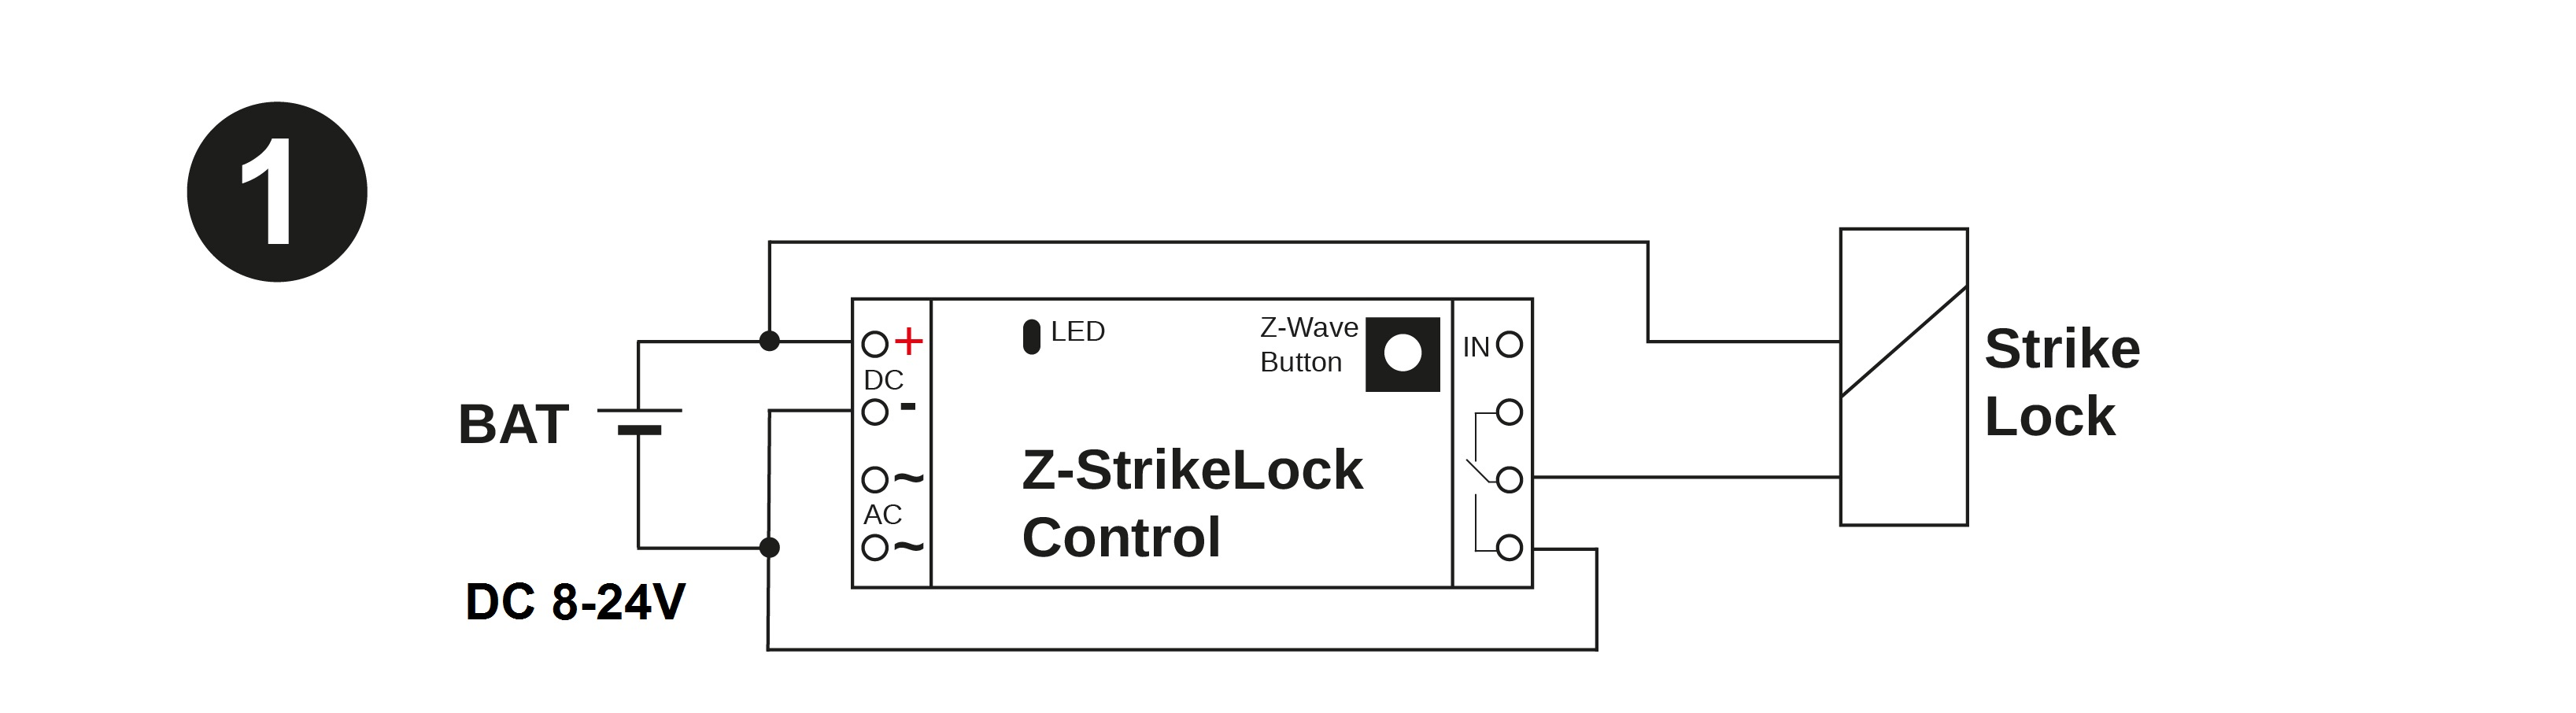 Electric Strike Lock Control Door Opener Type C Wiring Diagram You May Find Ac Power On The Spot If Is Near A Traditional Bell